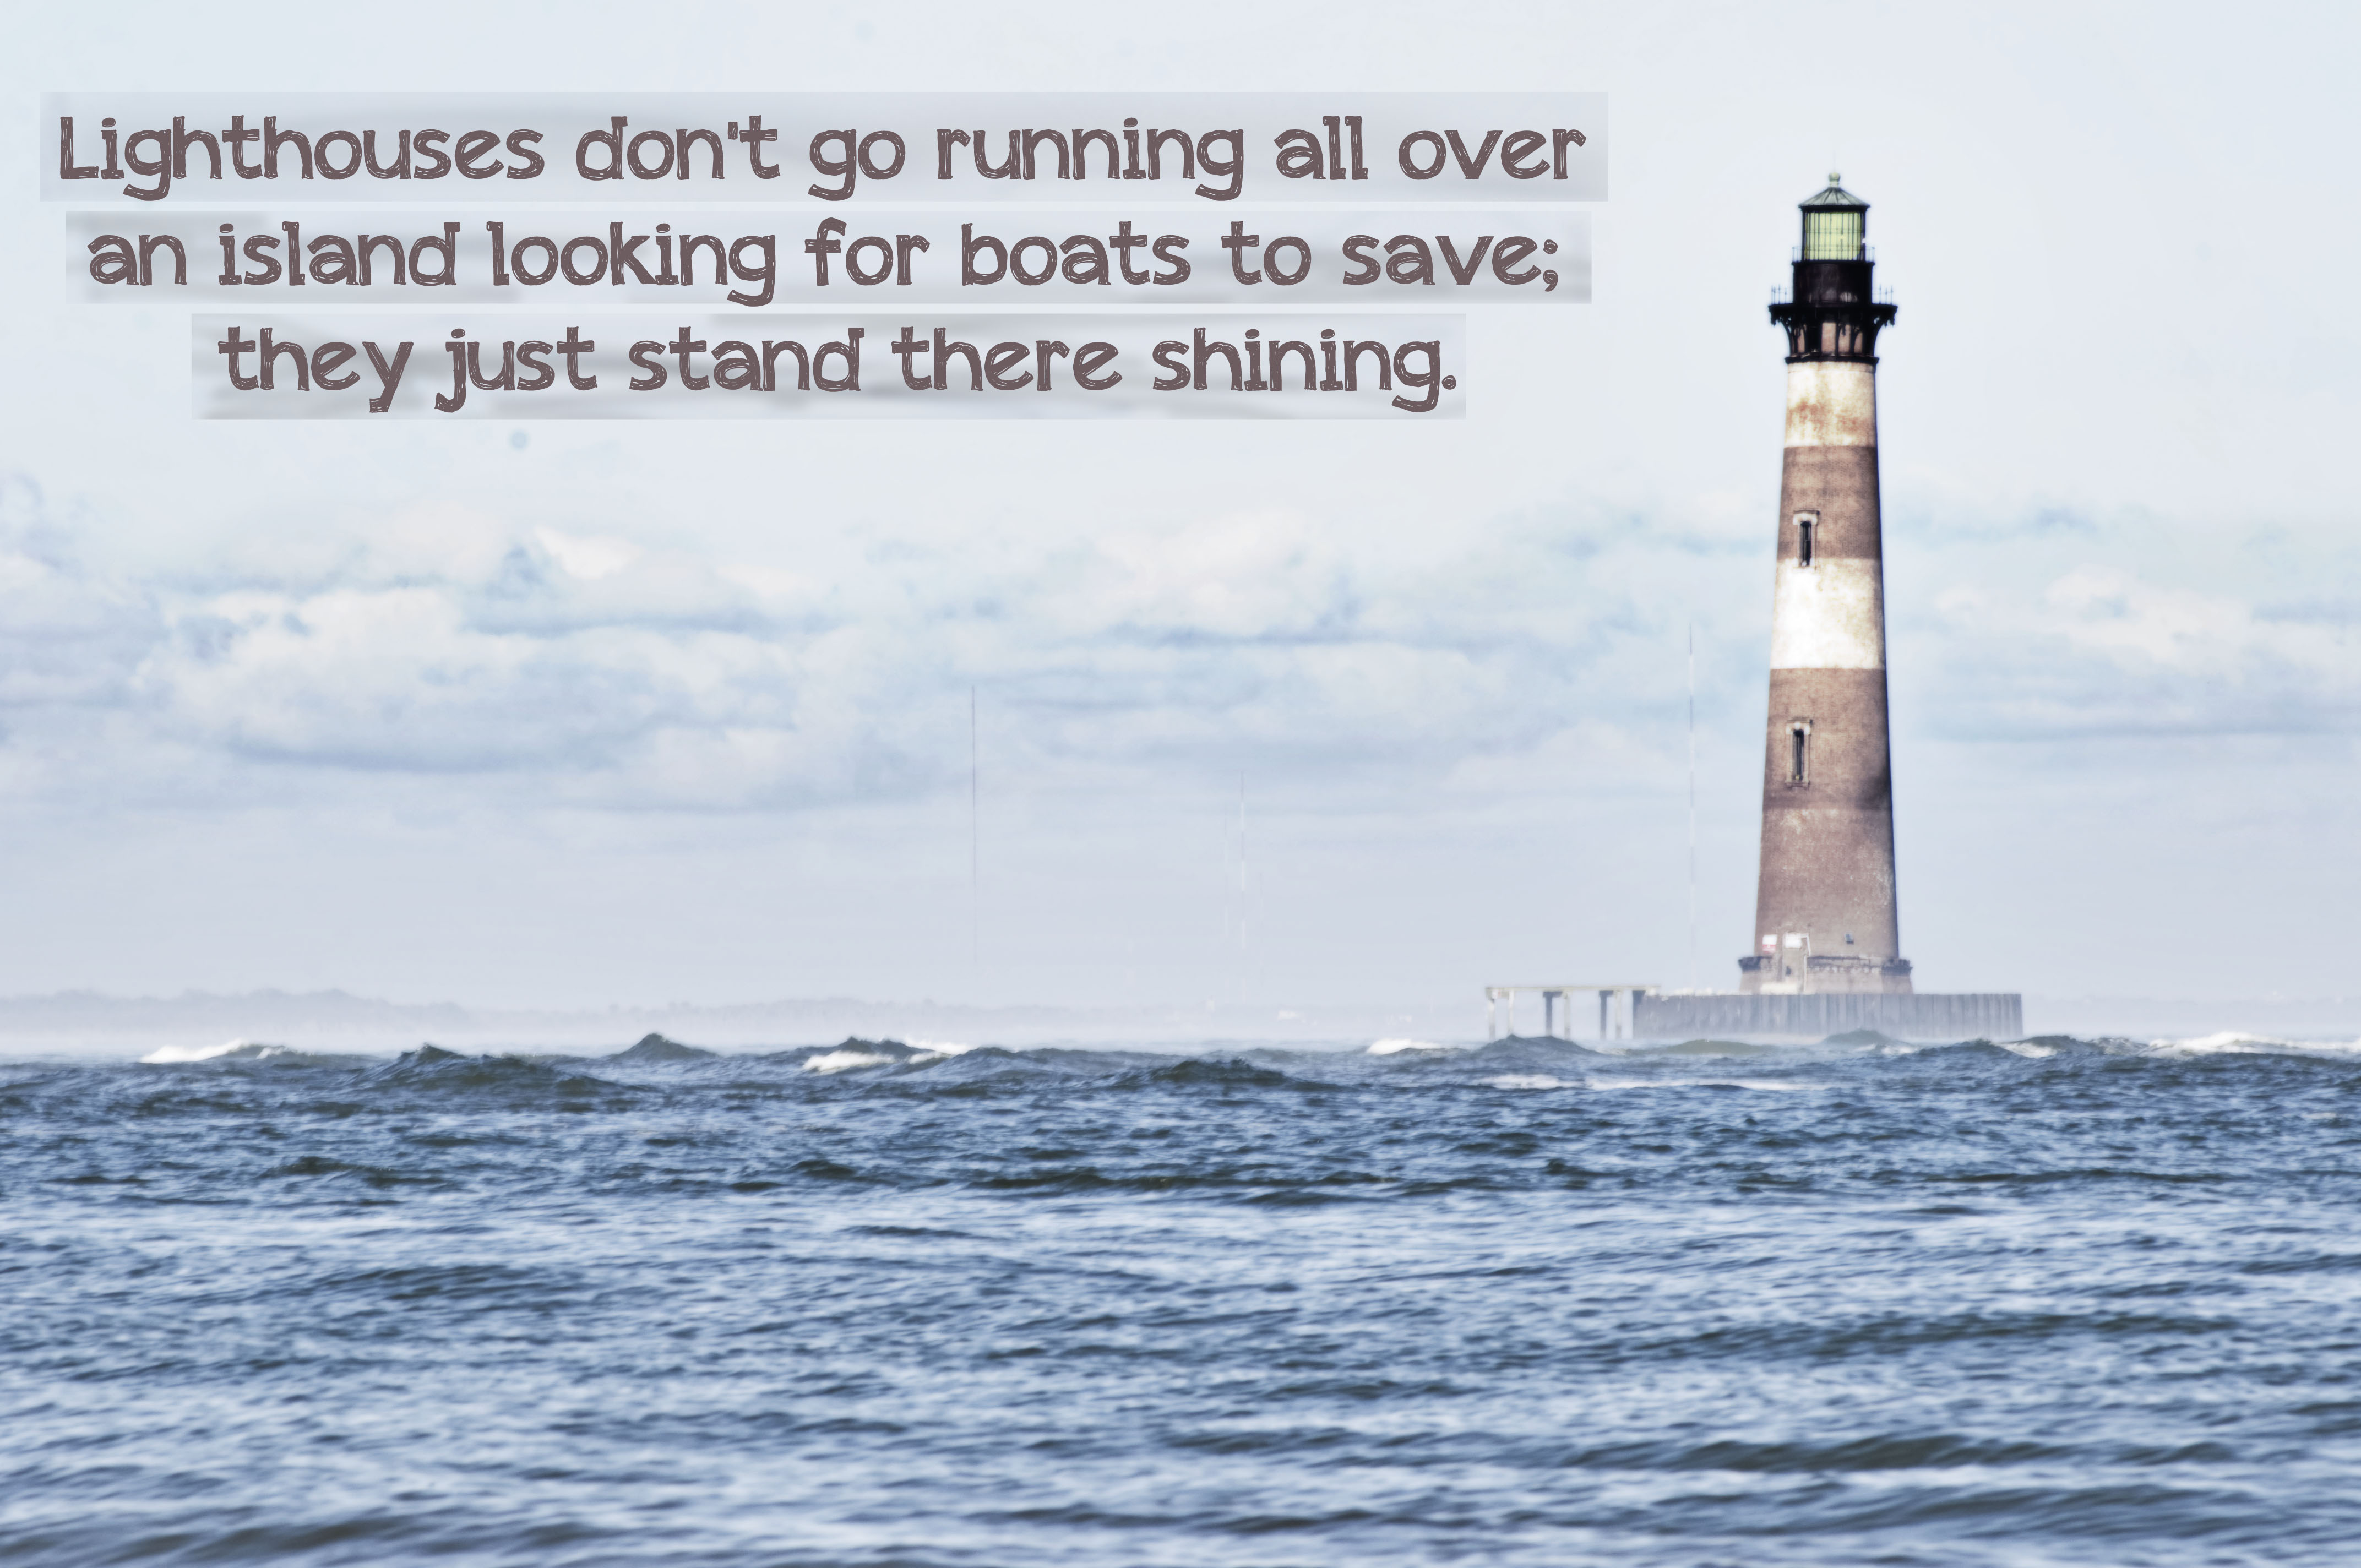 lighthouses don't...